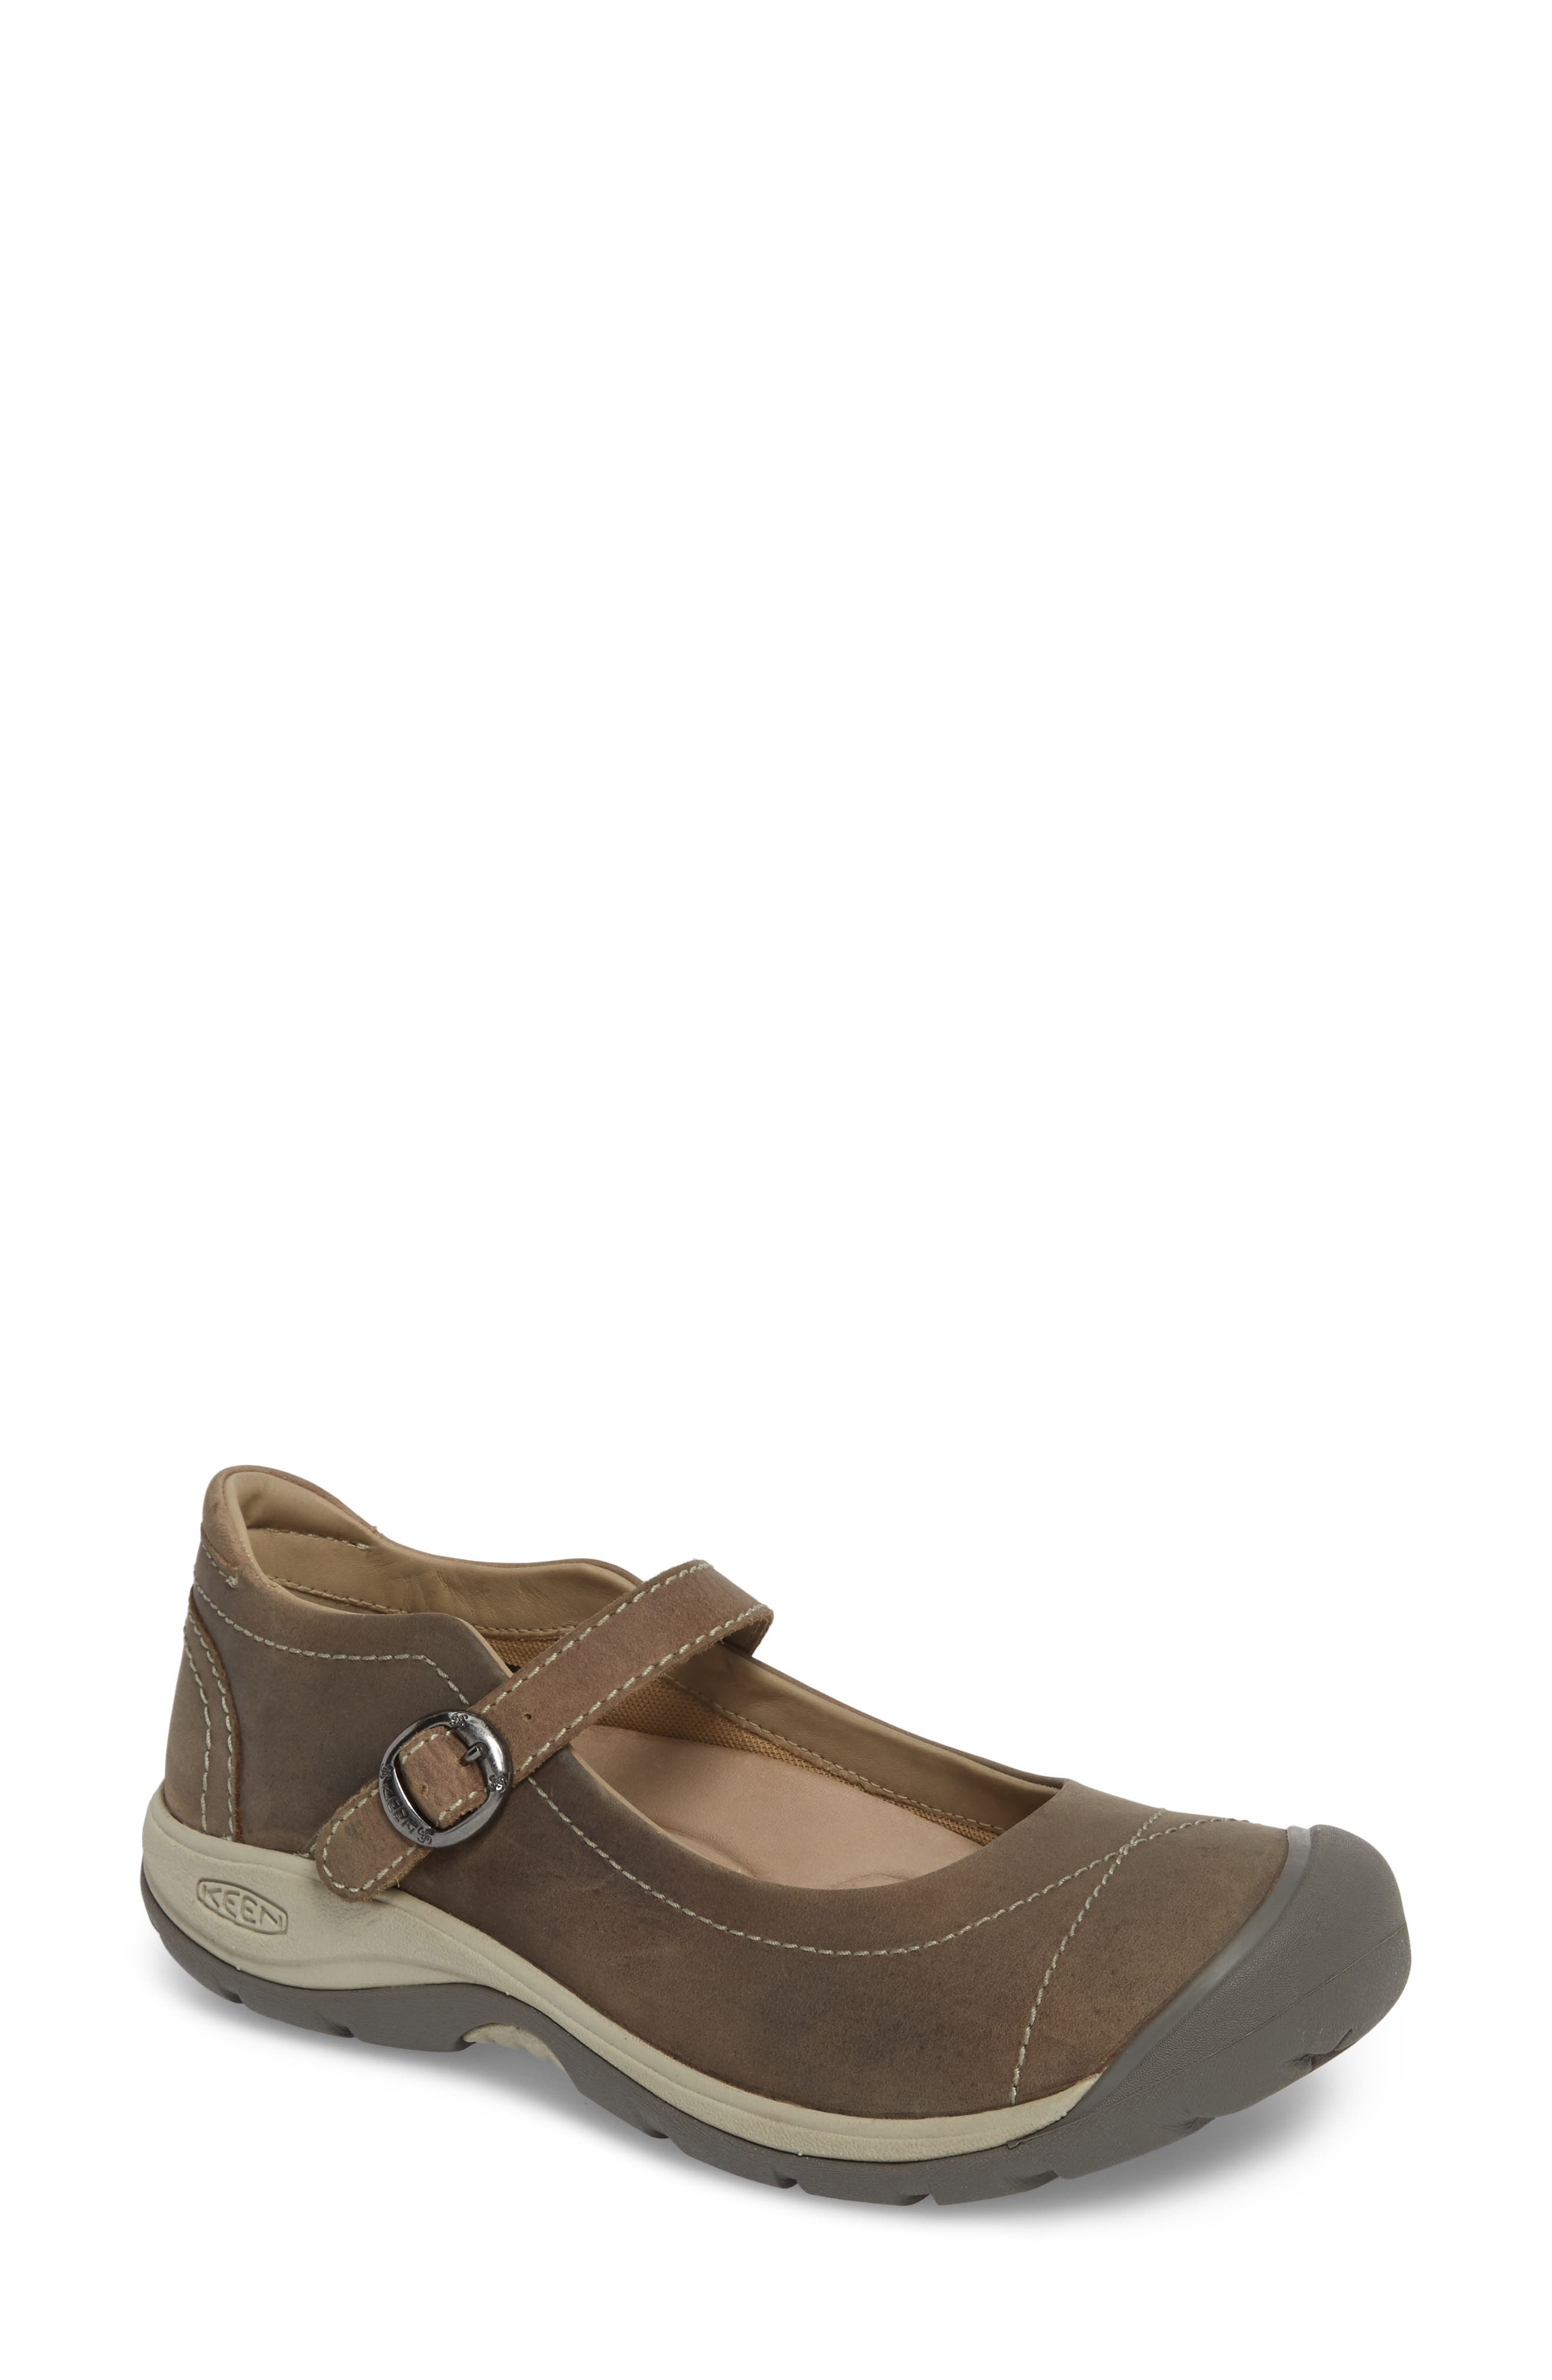 KEEN, Presidio II Mary Jane Flat, Main thumbnail 1, color, PALOMA/ SILVER BIRCH LEATHER